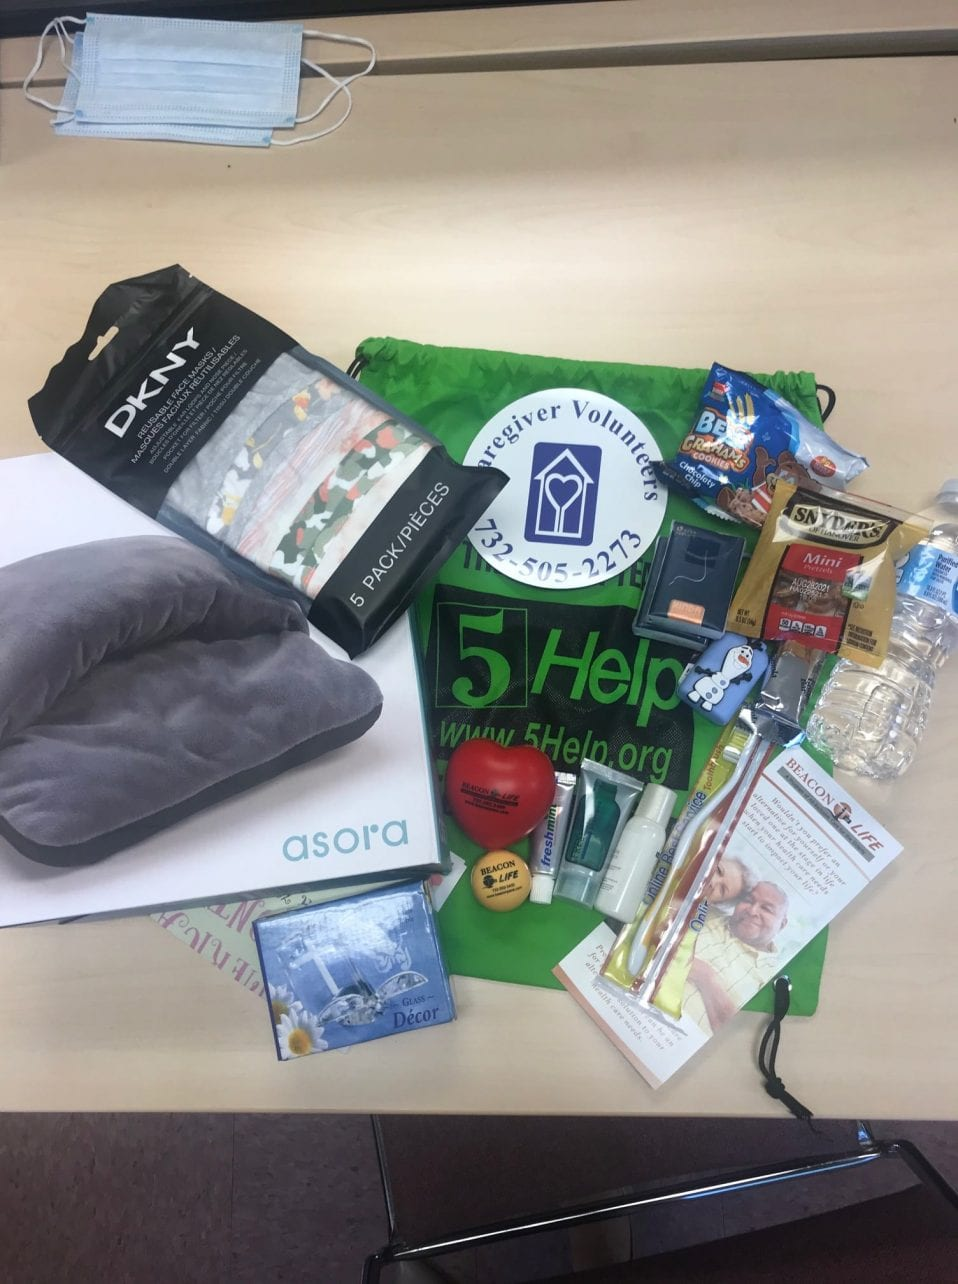 Goodie bags distributed by CVCJ and partners